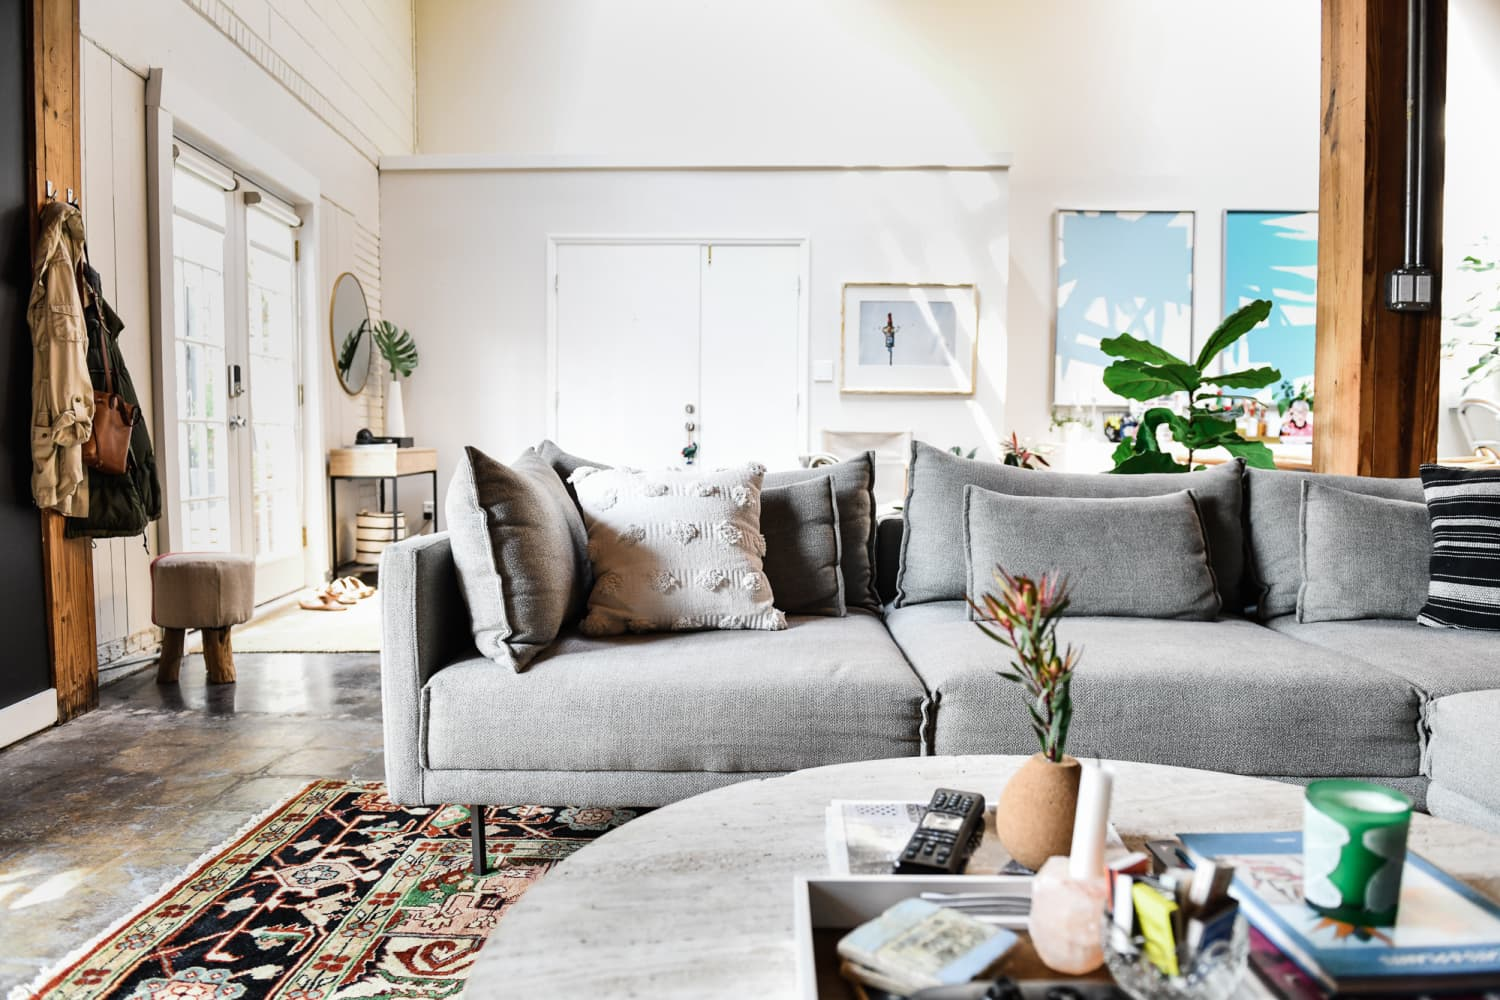 10 Teeny, Tiny Things Apartment Therapy Editors Did to Immediately Improve Their Living Rooms